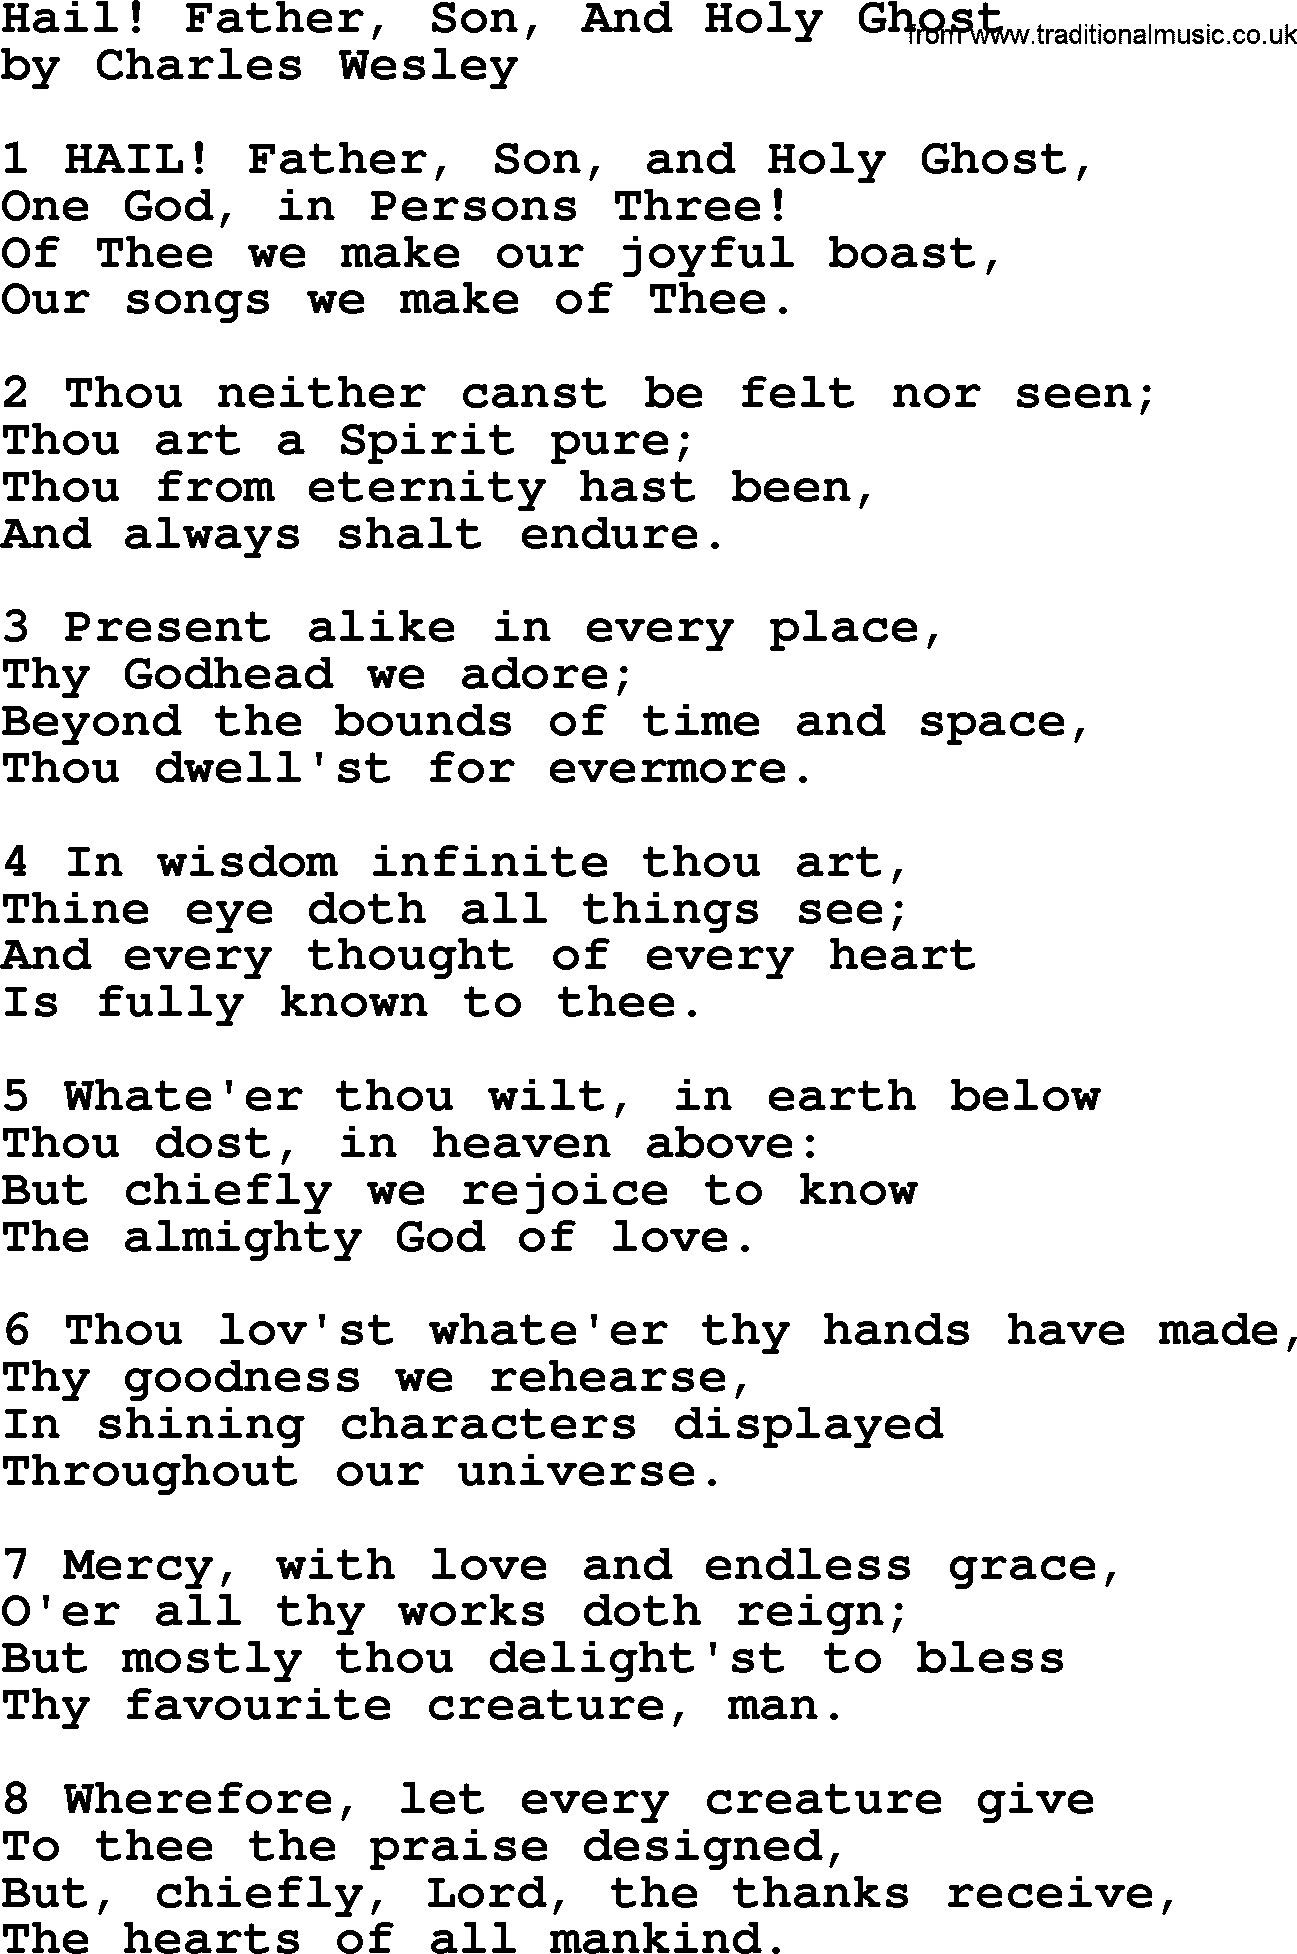 Hail Father Son And Holy Ghost By Charles Wesley Hymn